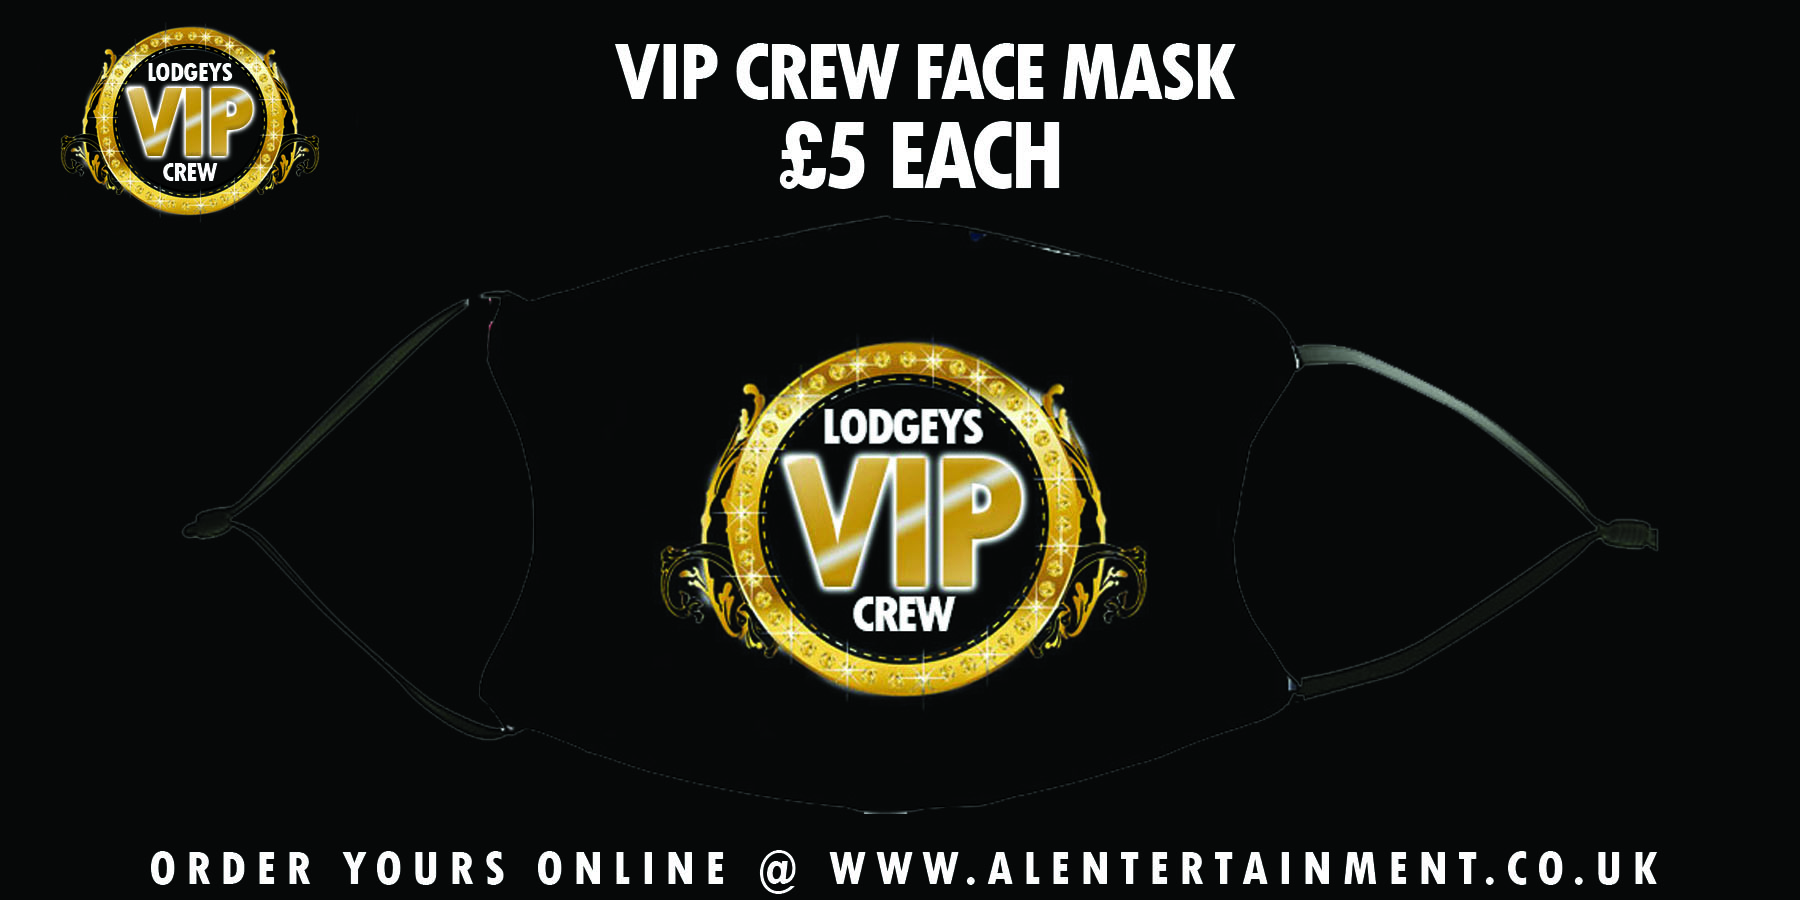 Lodgie's VIP Crew - Face MASK